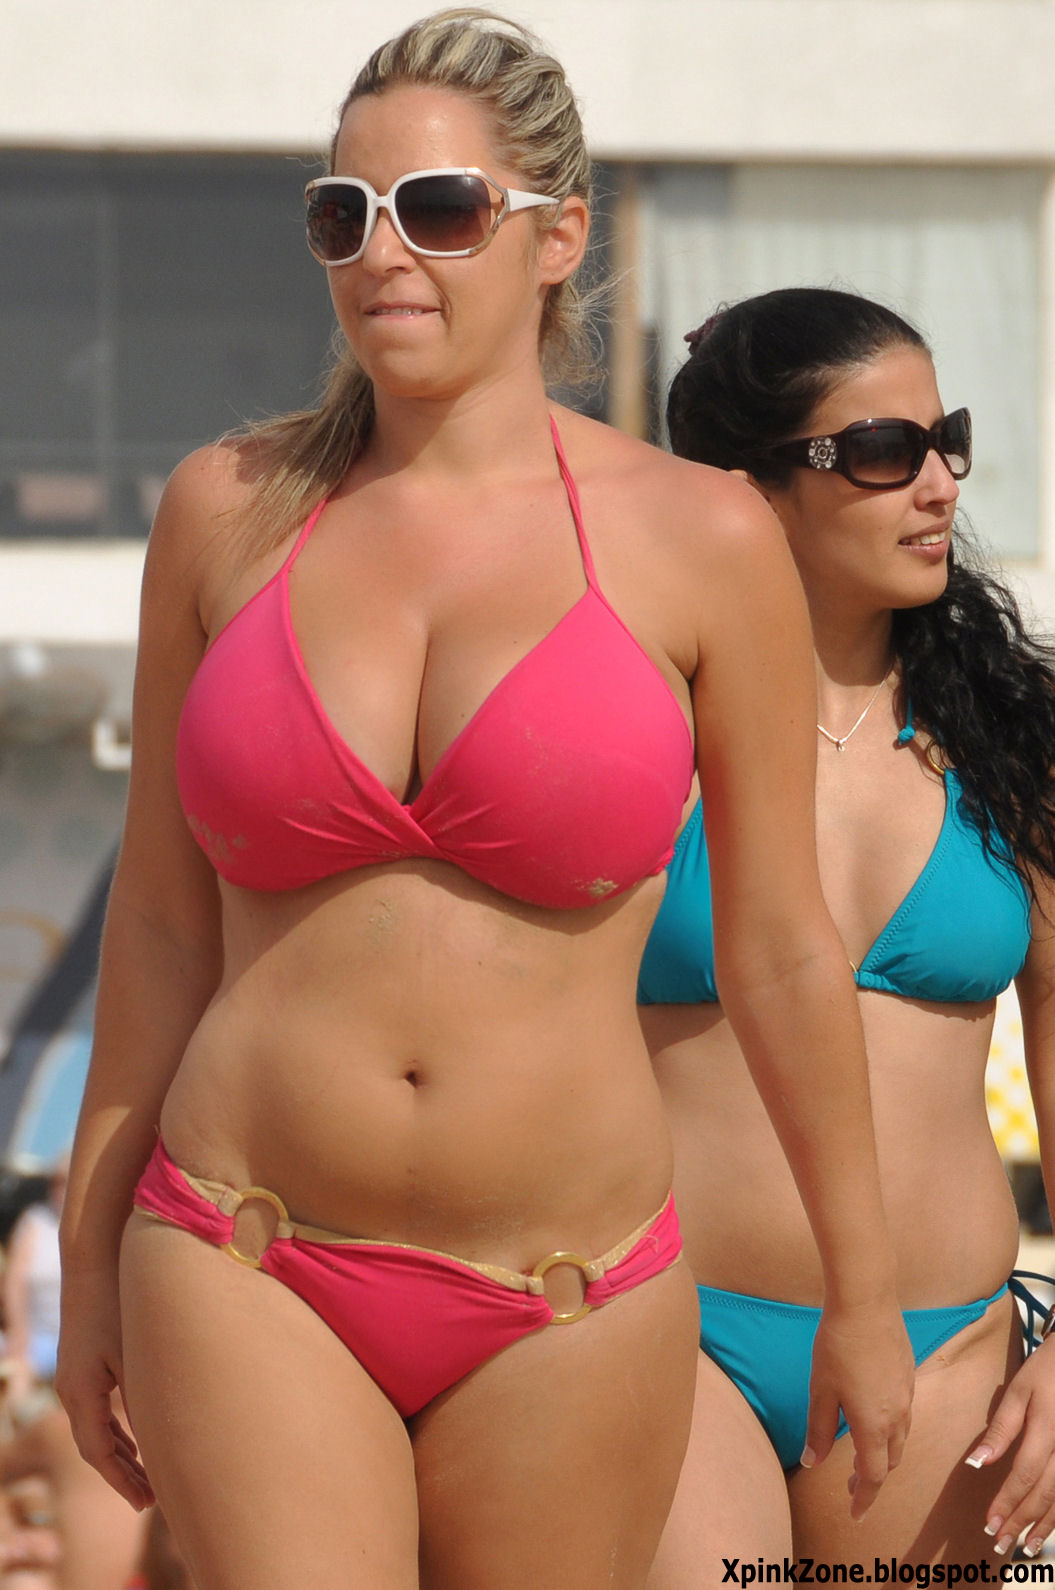 Hot plus size amateur opinion you